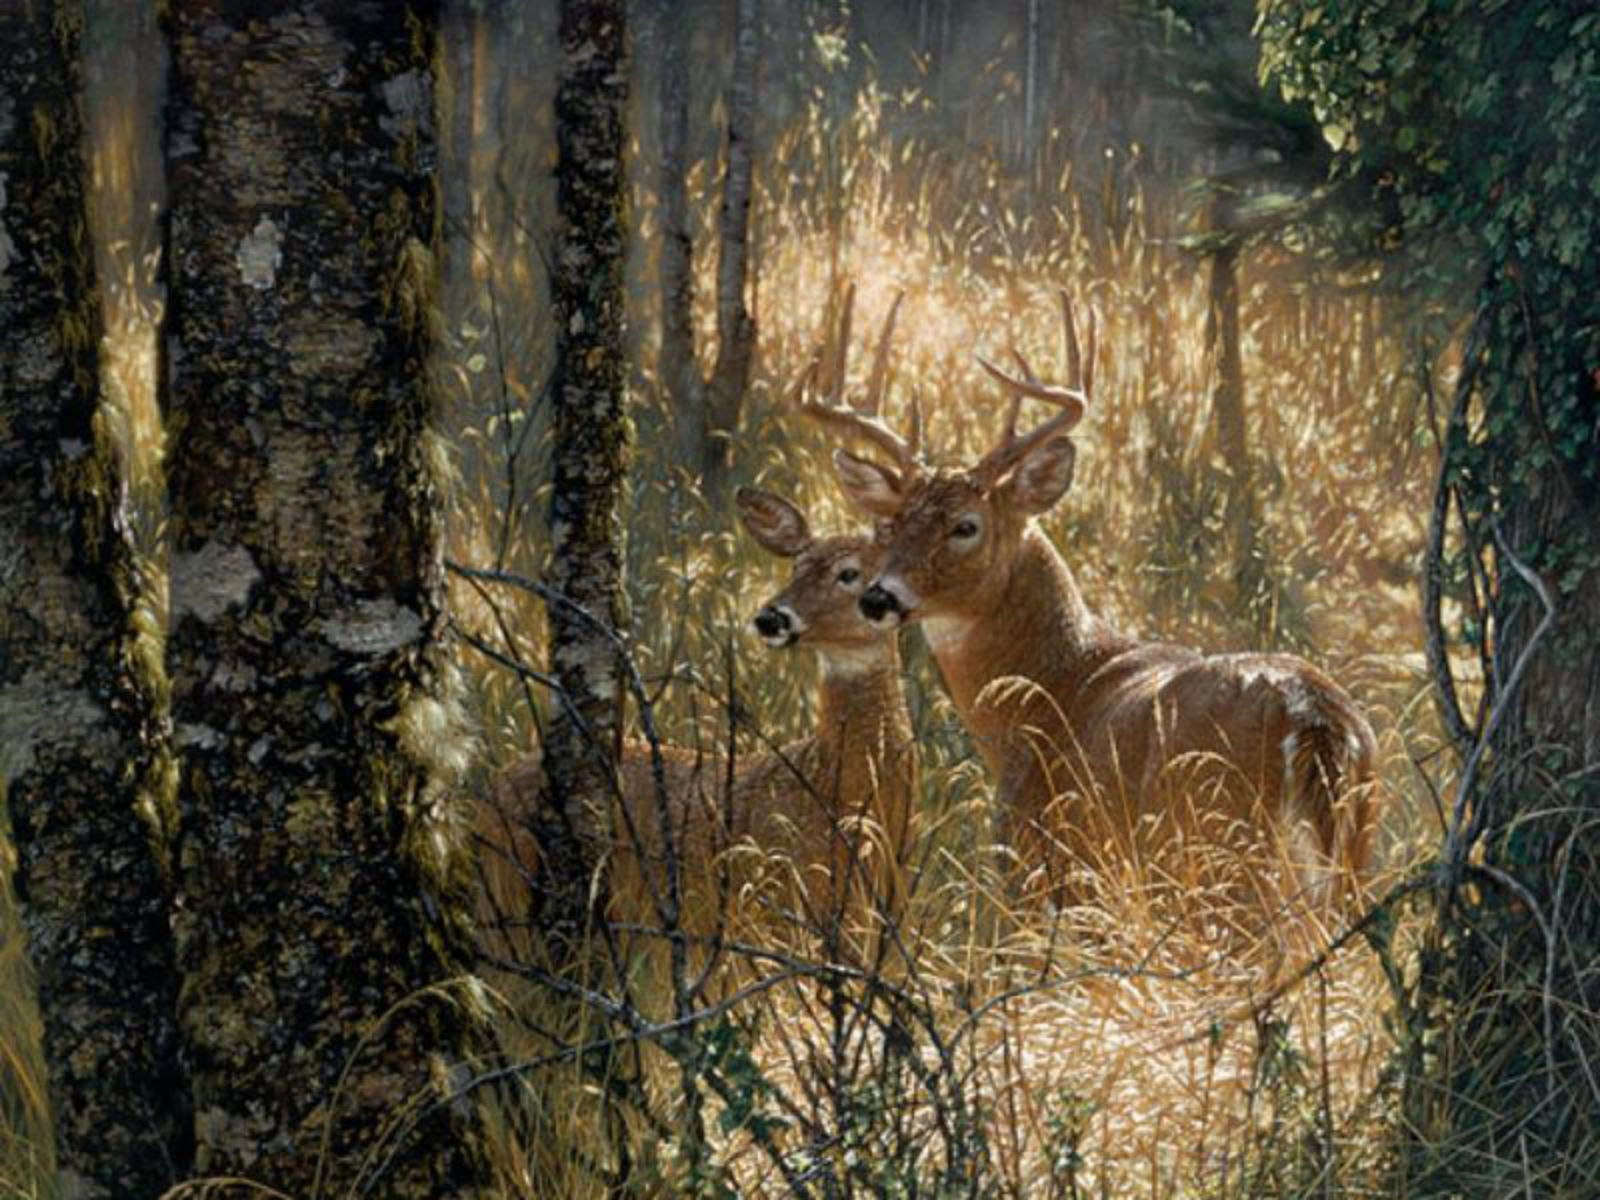 deer wallpaperHigh Definition whitetail deer wallpaperHigh 1600x1200